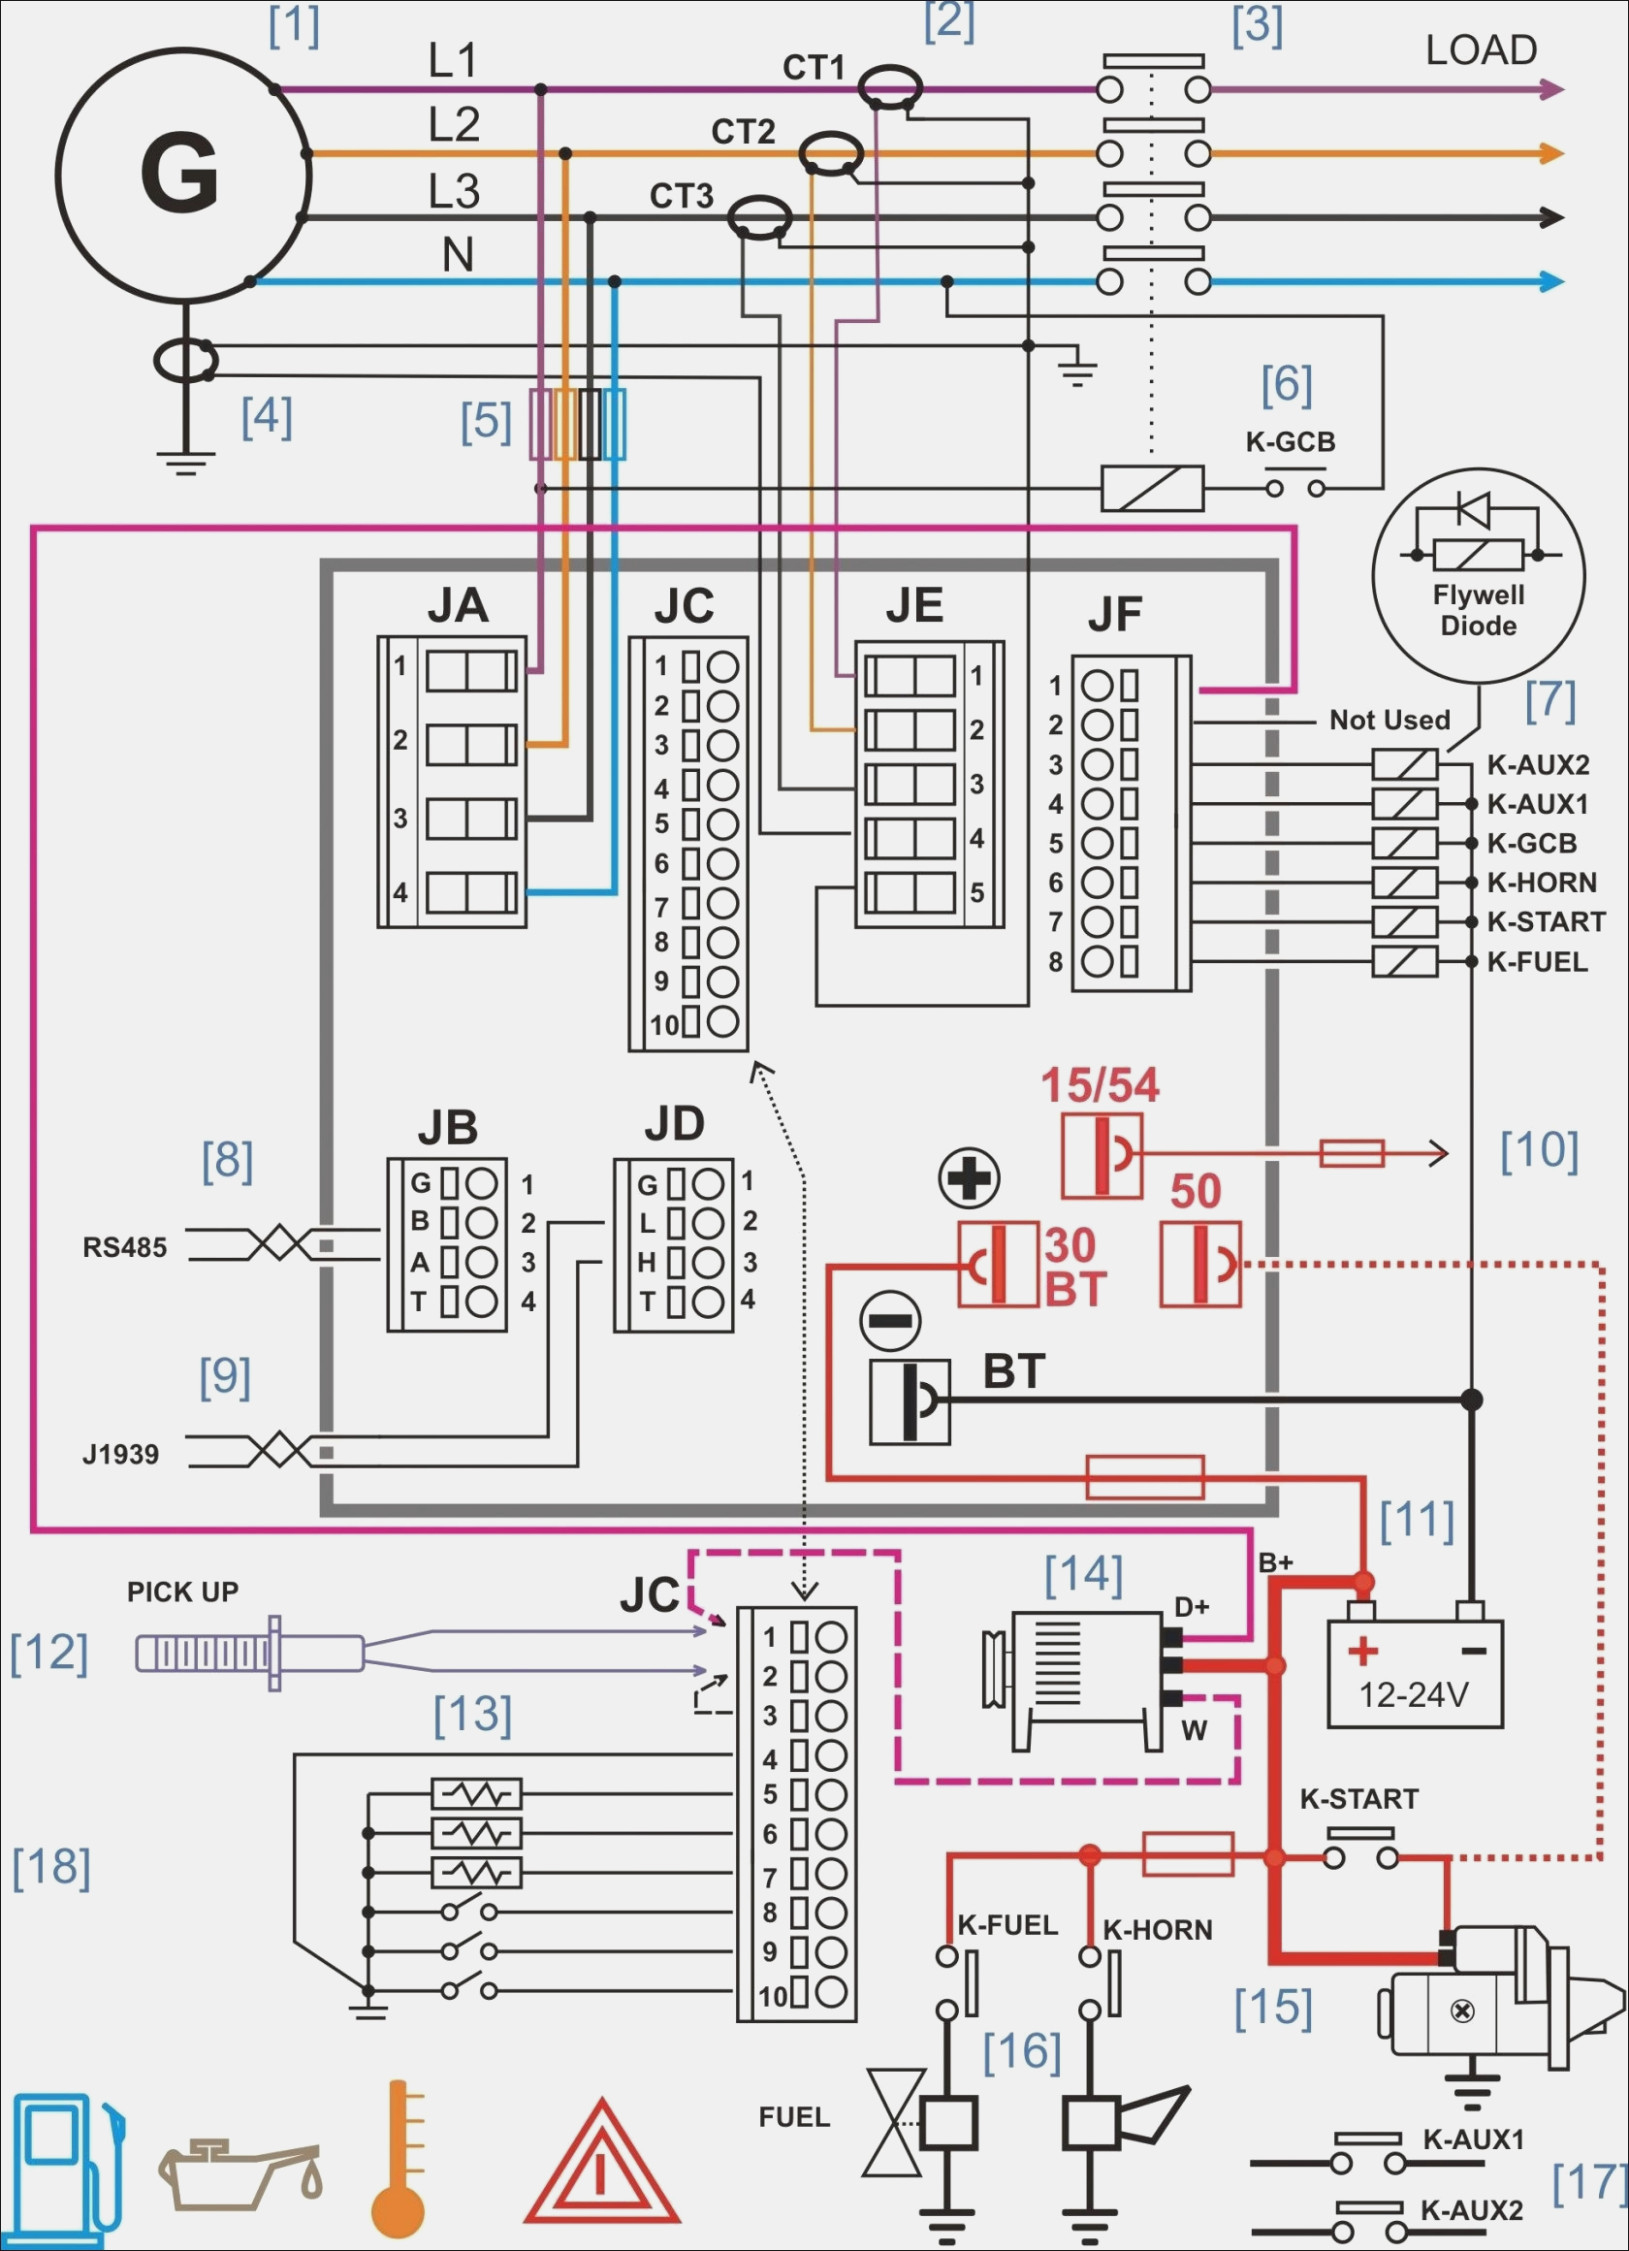 Rv Water Pump Wiring Diagram | Manual E-Books - Shurflo Water Pump Wiring Diagram